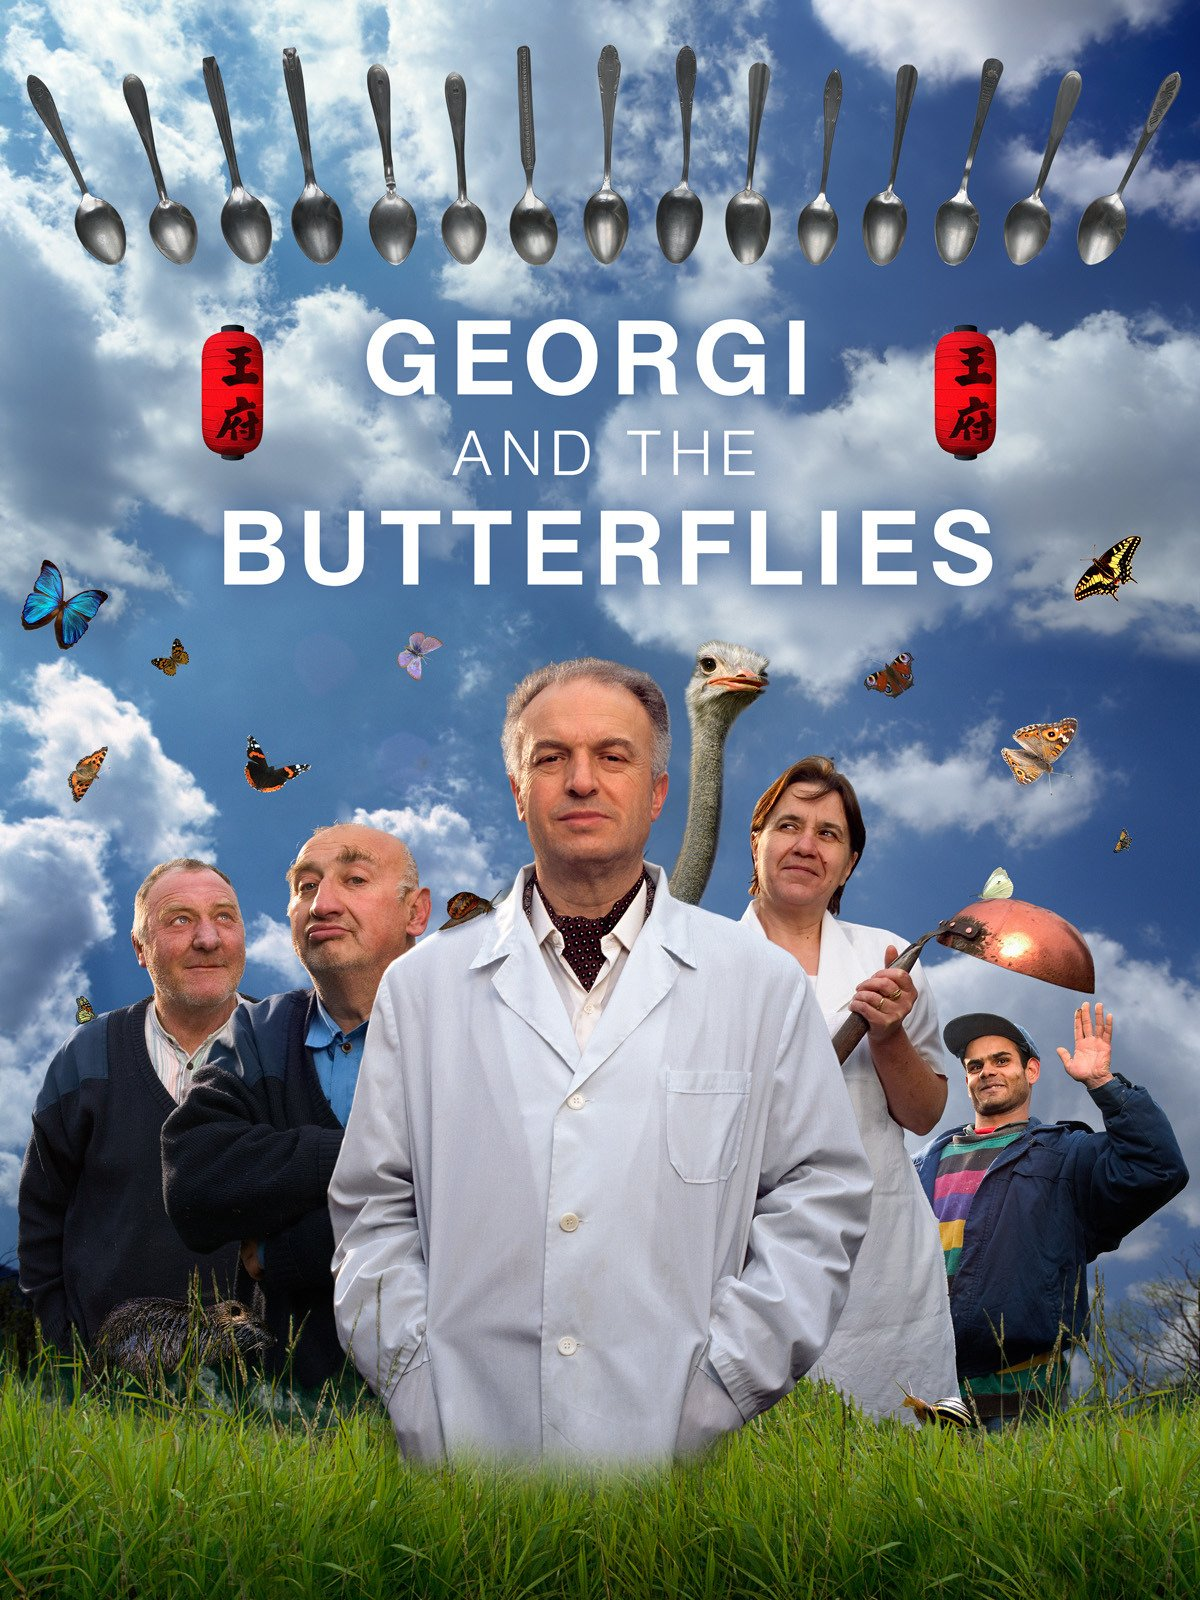 Georgi and the Butterflies